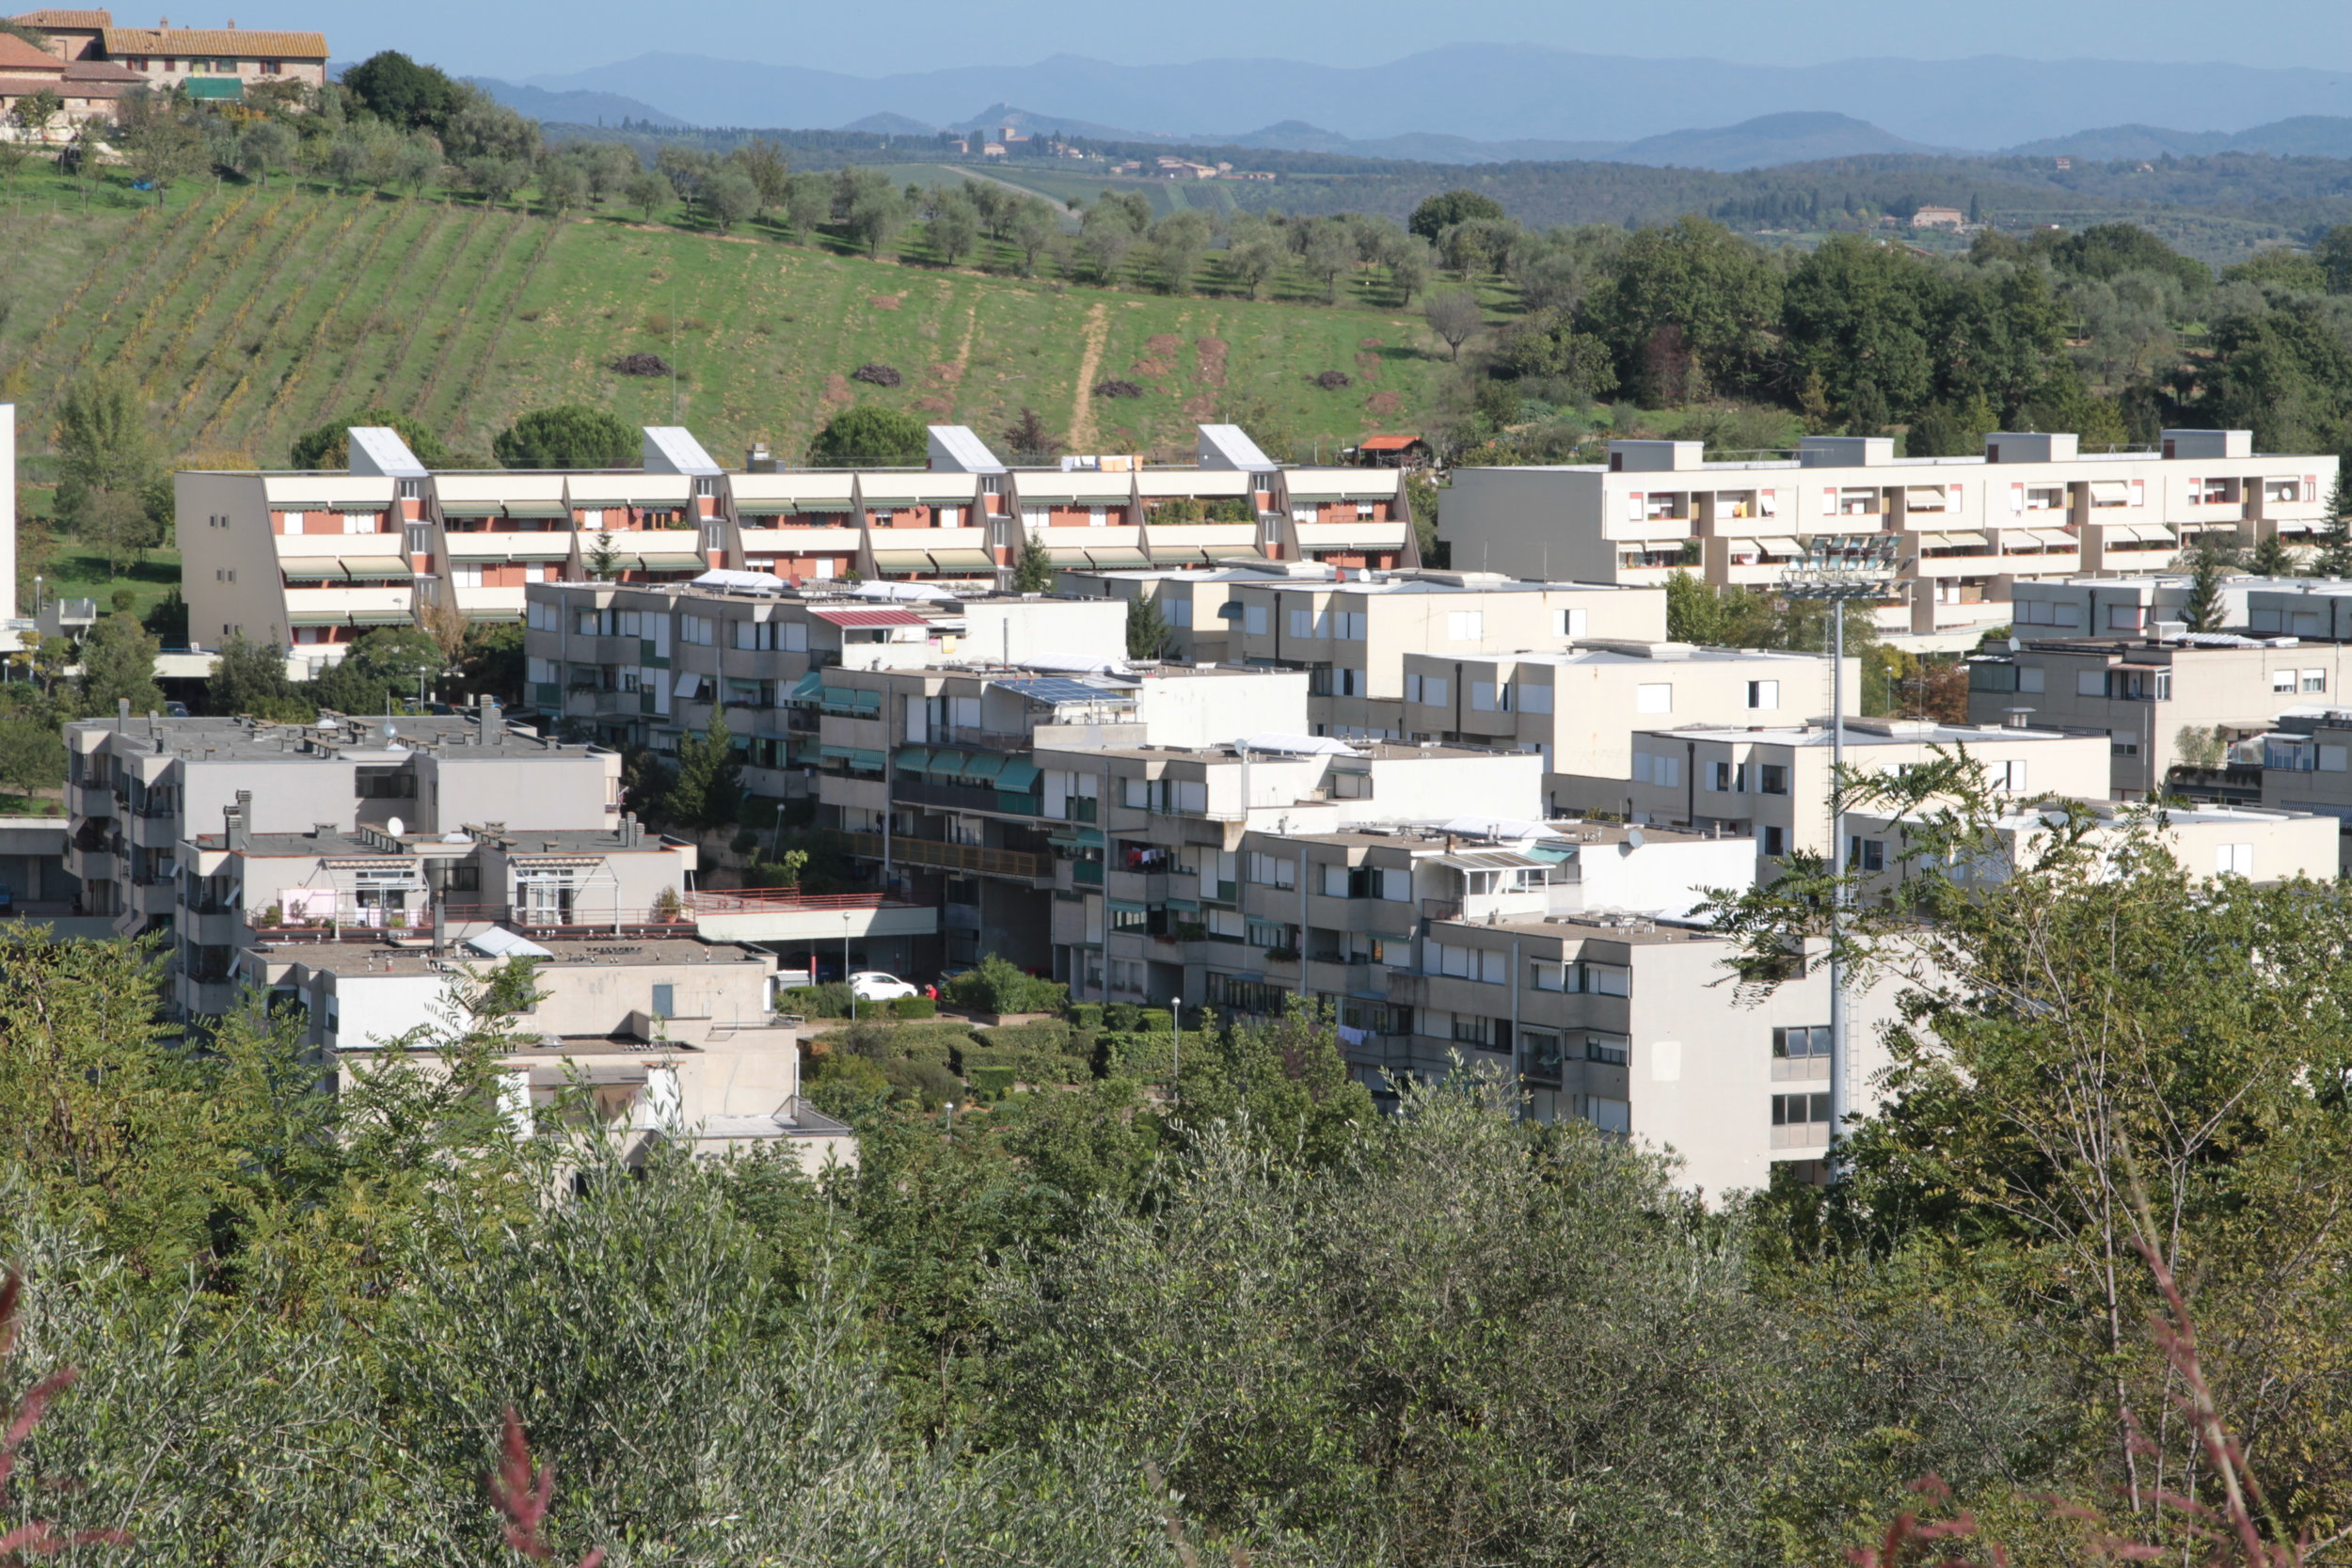 view-of-san-miniato-housing-complex_8120048379_o.jpg